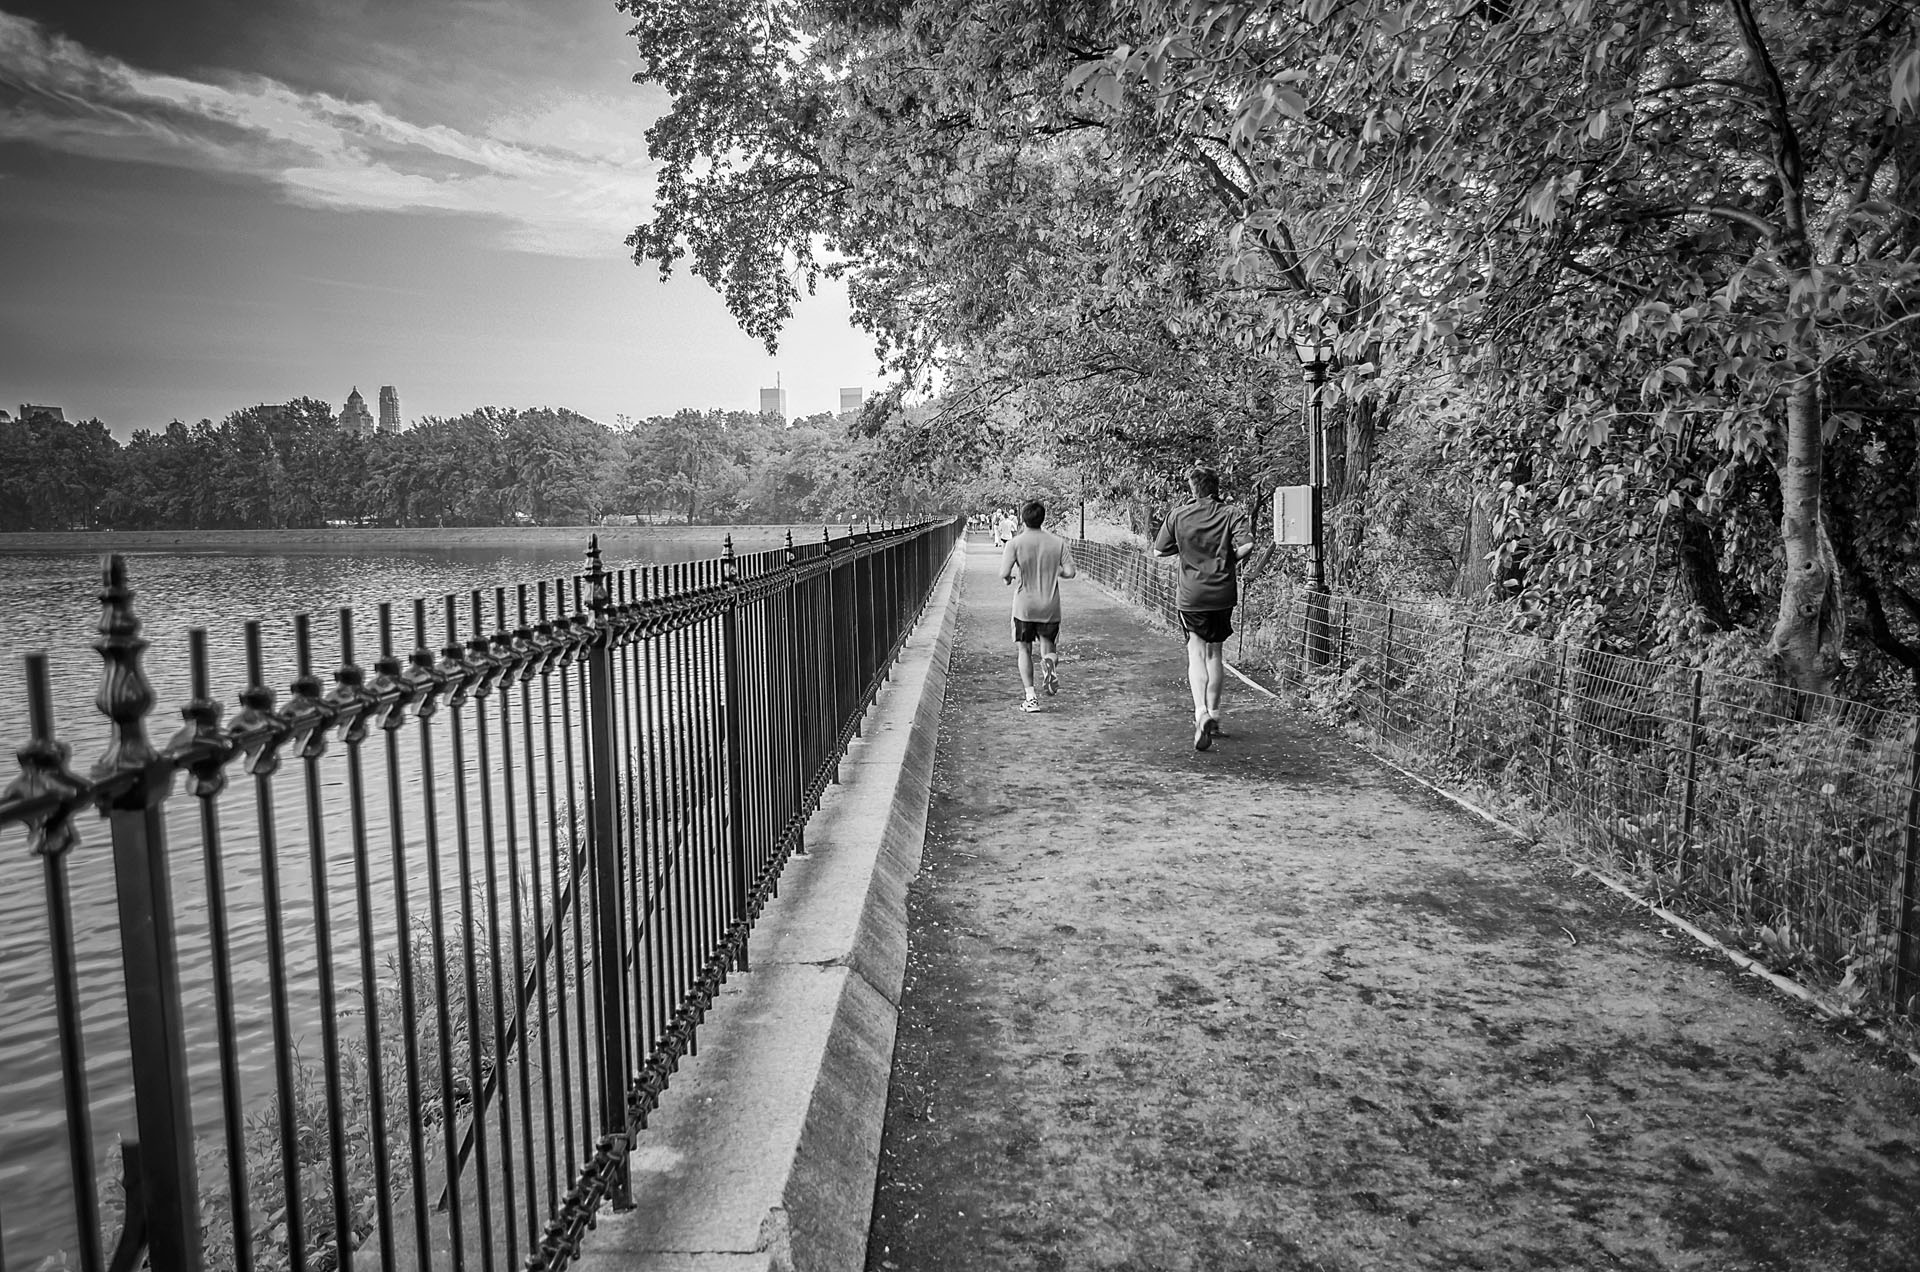 Jogging in Central Park, New York City, USA